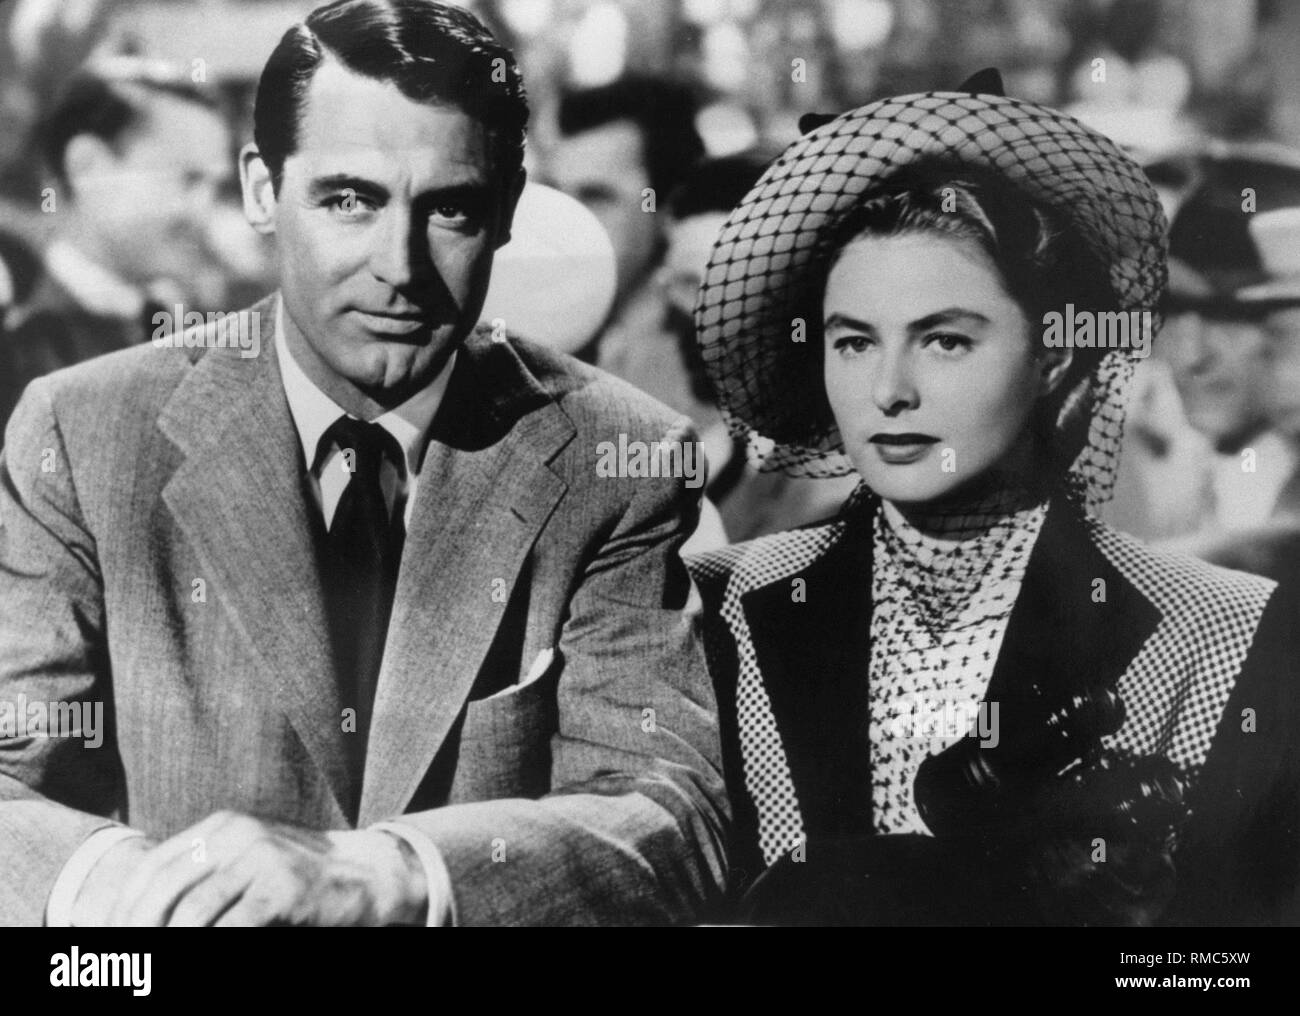 On August 29, 2002 was the 20th death anniversary of actress Ingrid Bergman (photo: with Cary Grant). Born in Stockholm, the actress has become known for films such as 'Casablanca' or 'For Whom the Bell Tolls'. - Stock Image